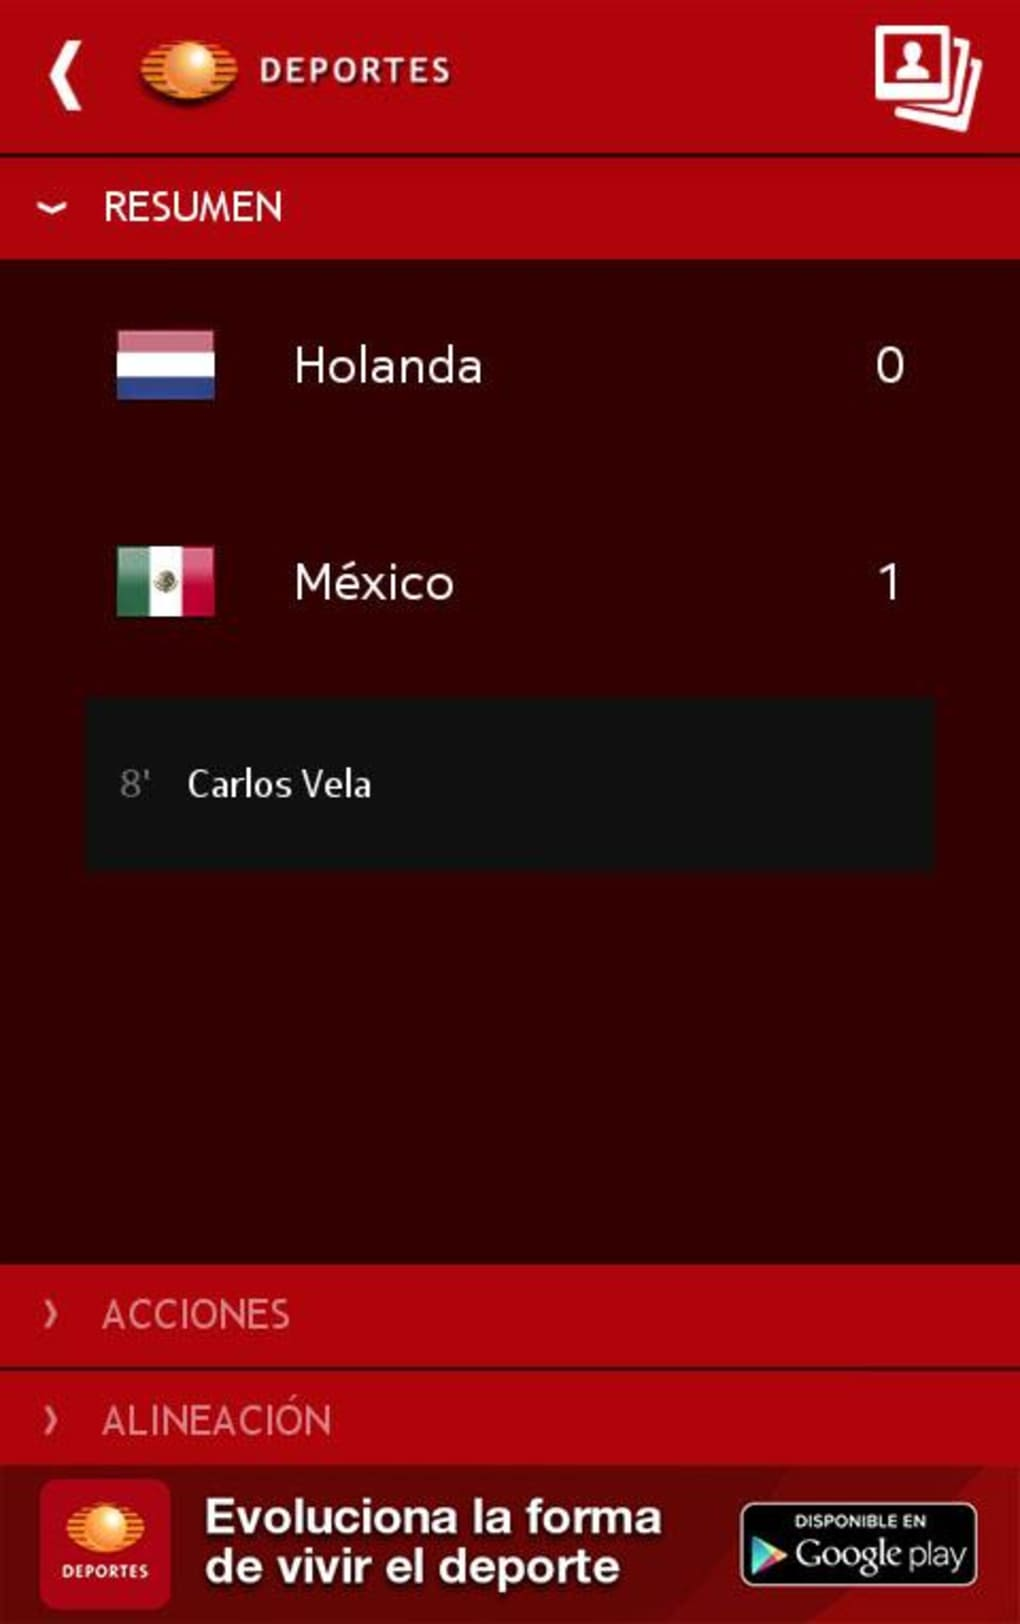 Televisa's official app